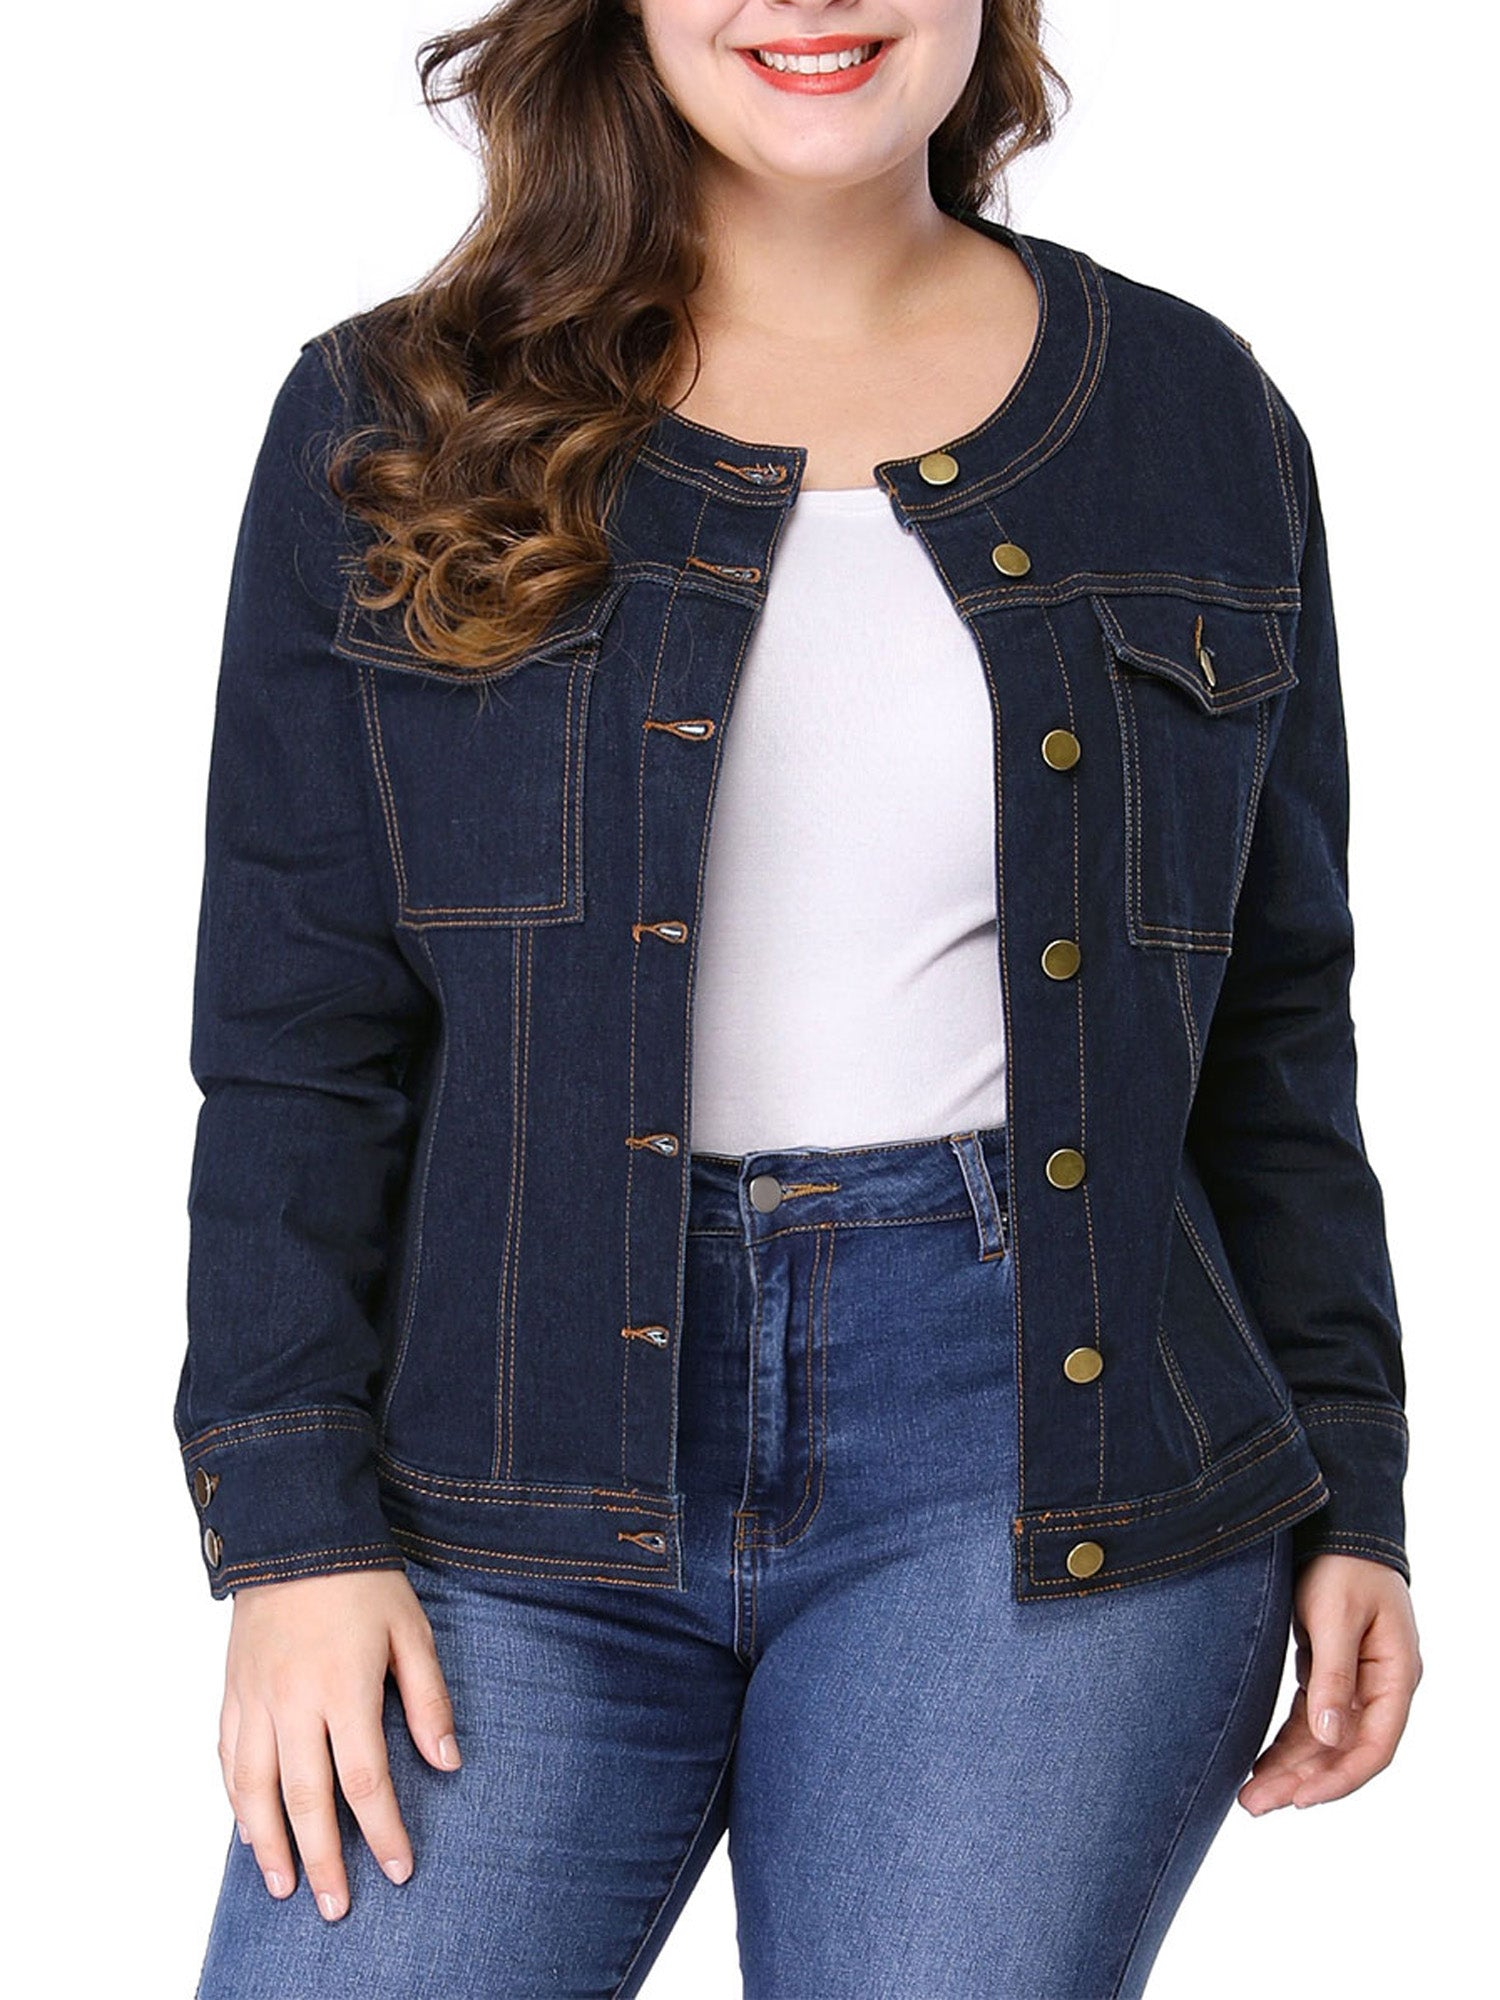 Women's  Collarless Denim Jacket - FLJ CORPORATIONS